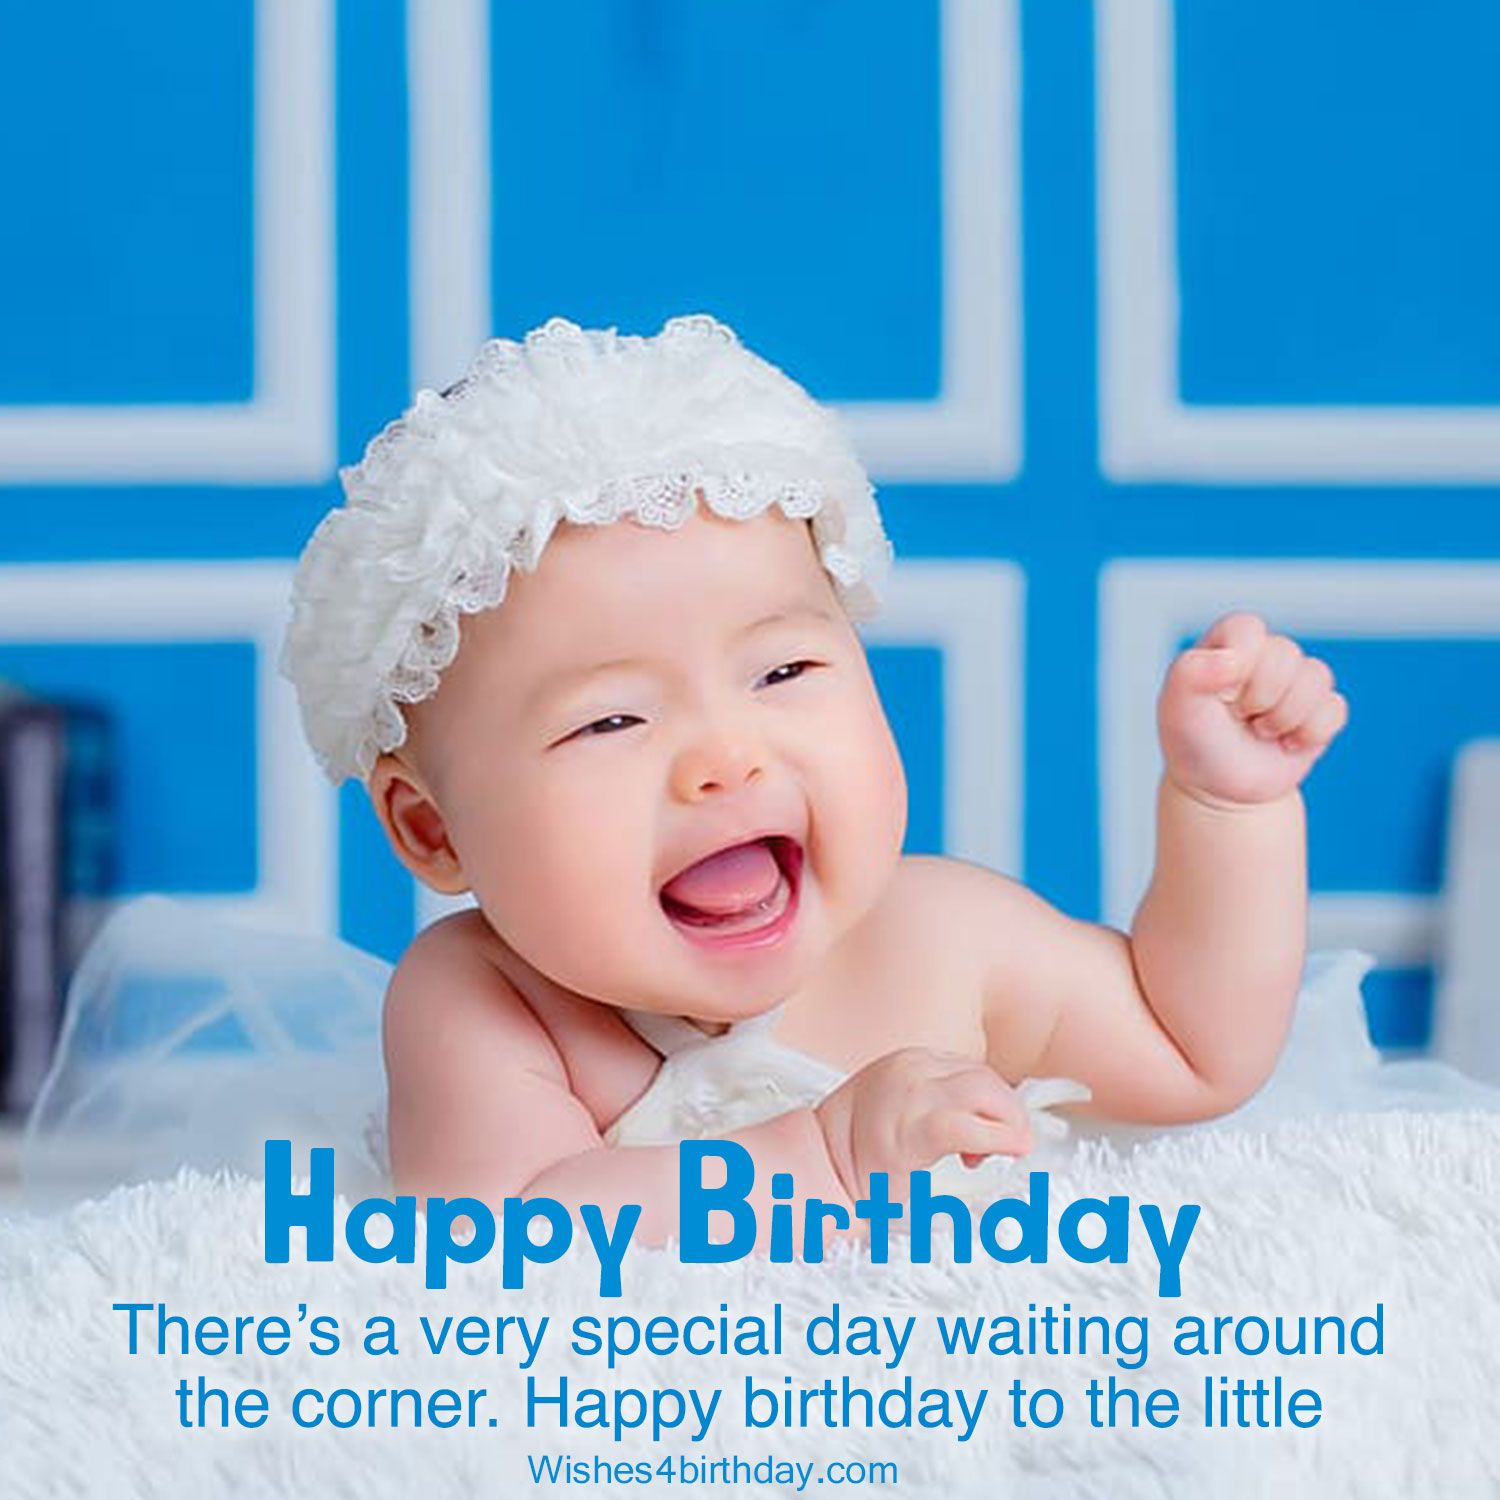 Happy Birthday Baby Images 2021 Happy Birthday Baby Baby Images Breastfed Baby